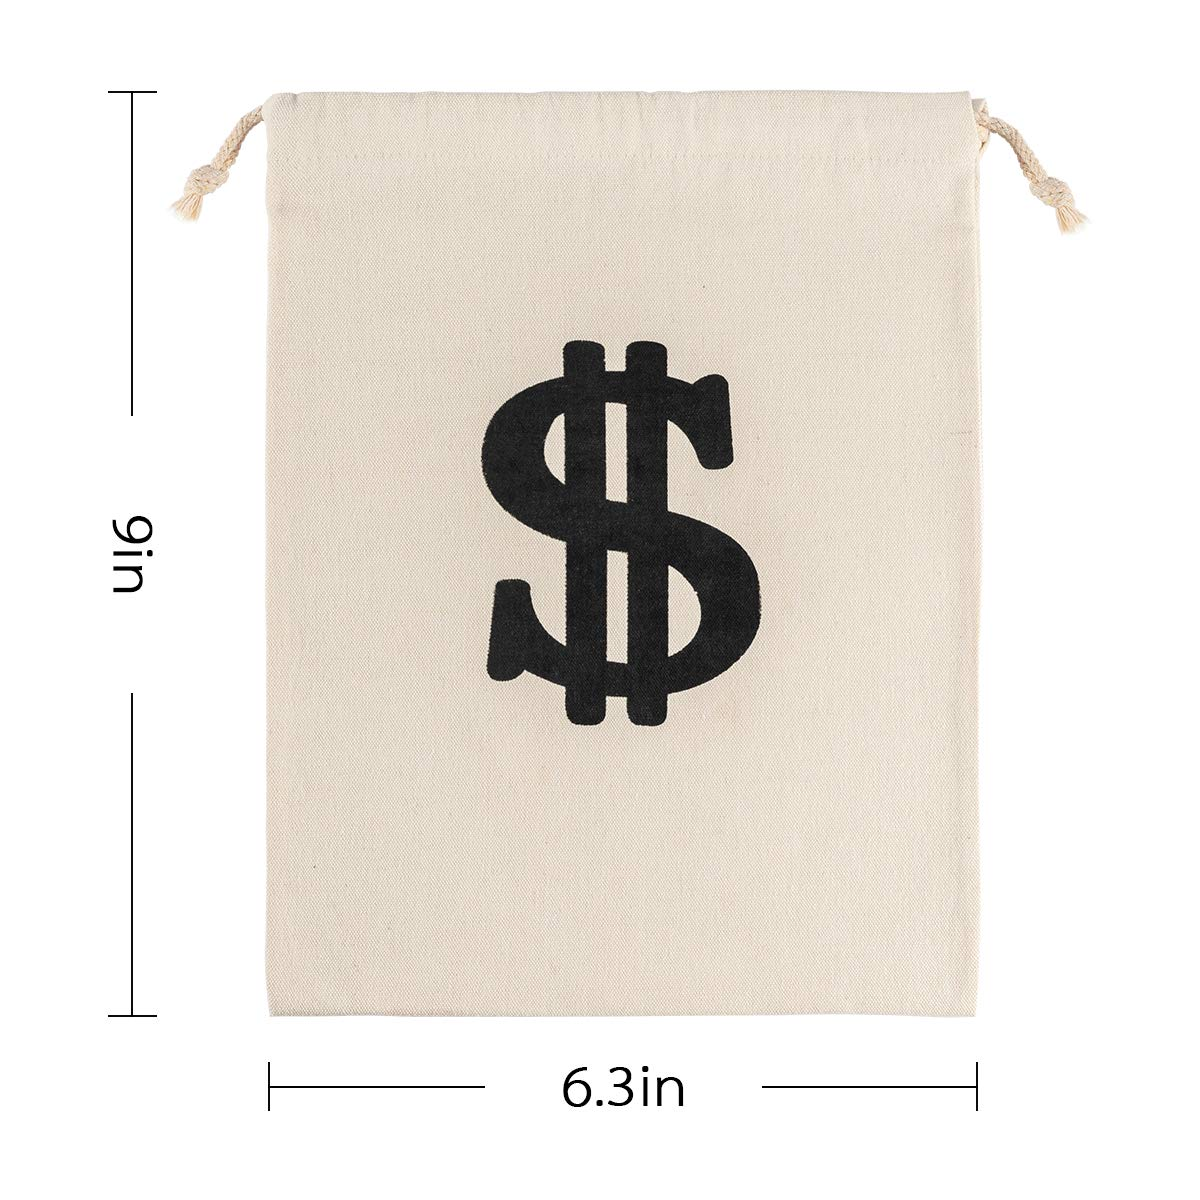 Bank Robber Pirate Cowboy Cosplay Theme Party Apipi 4 Pack 6.3 x 9 Inches Canvas Money Bag Pouch with Drawstring Closure Canvas Cloth Dollar Sign Carrying Sack for Toy Party Favor